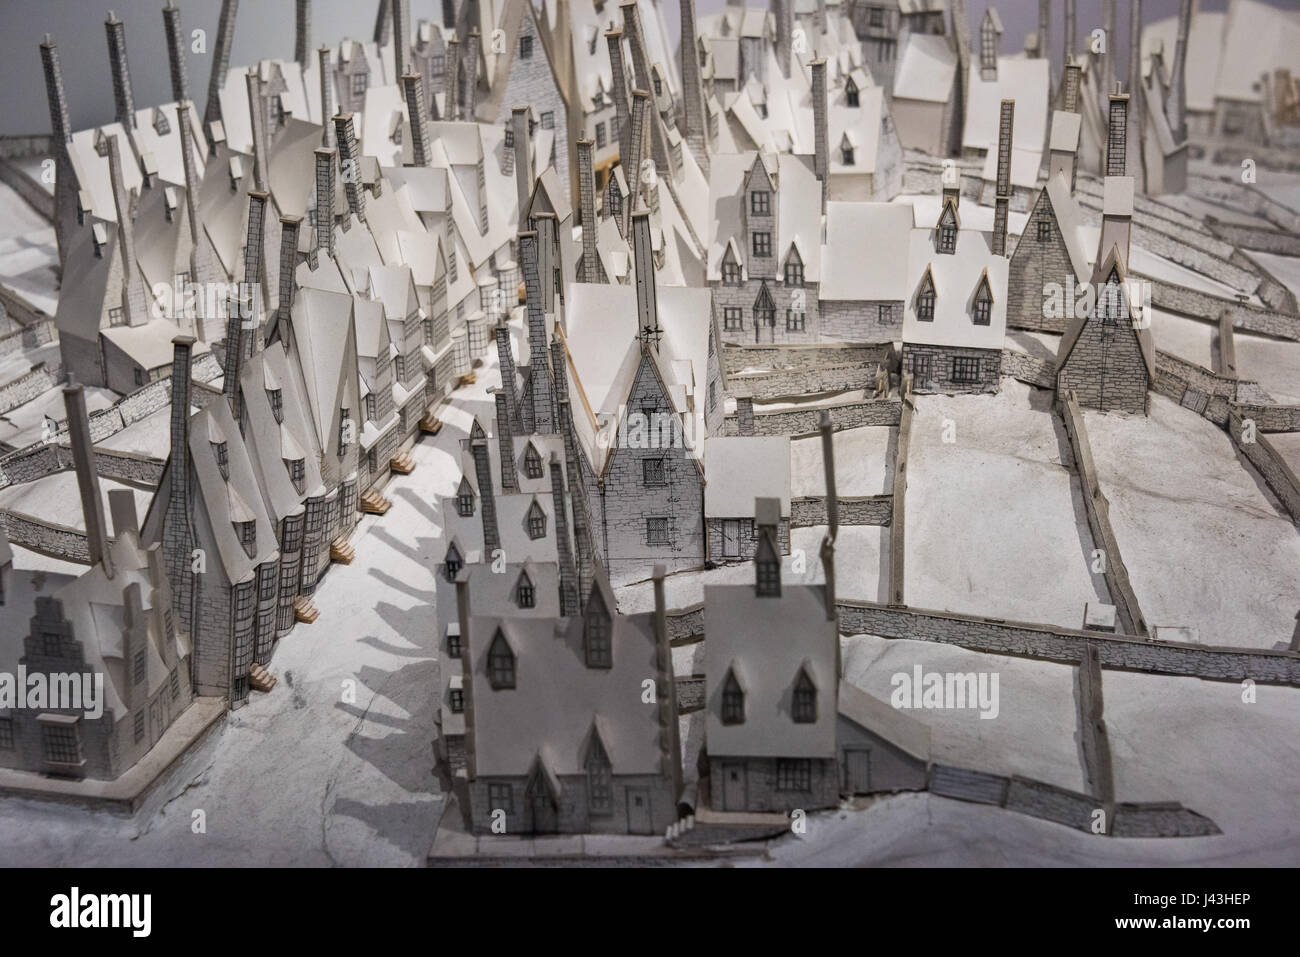 Hogsmeade Modell, Making of Harry Potter, Warner Bros.-Studio-Tour, Leavesden, London Stockbild